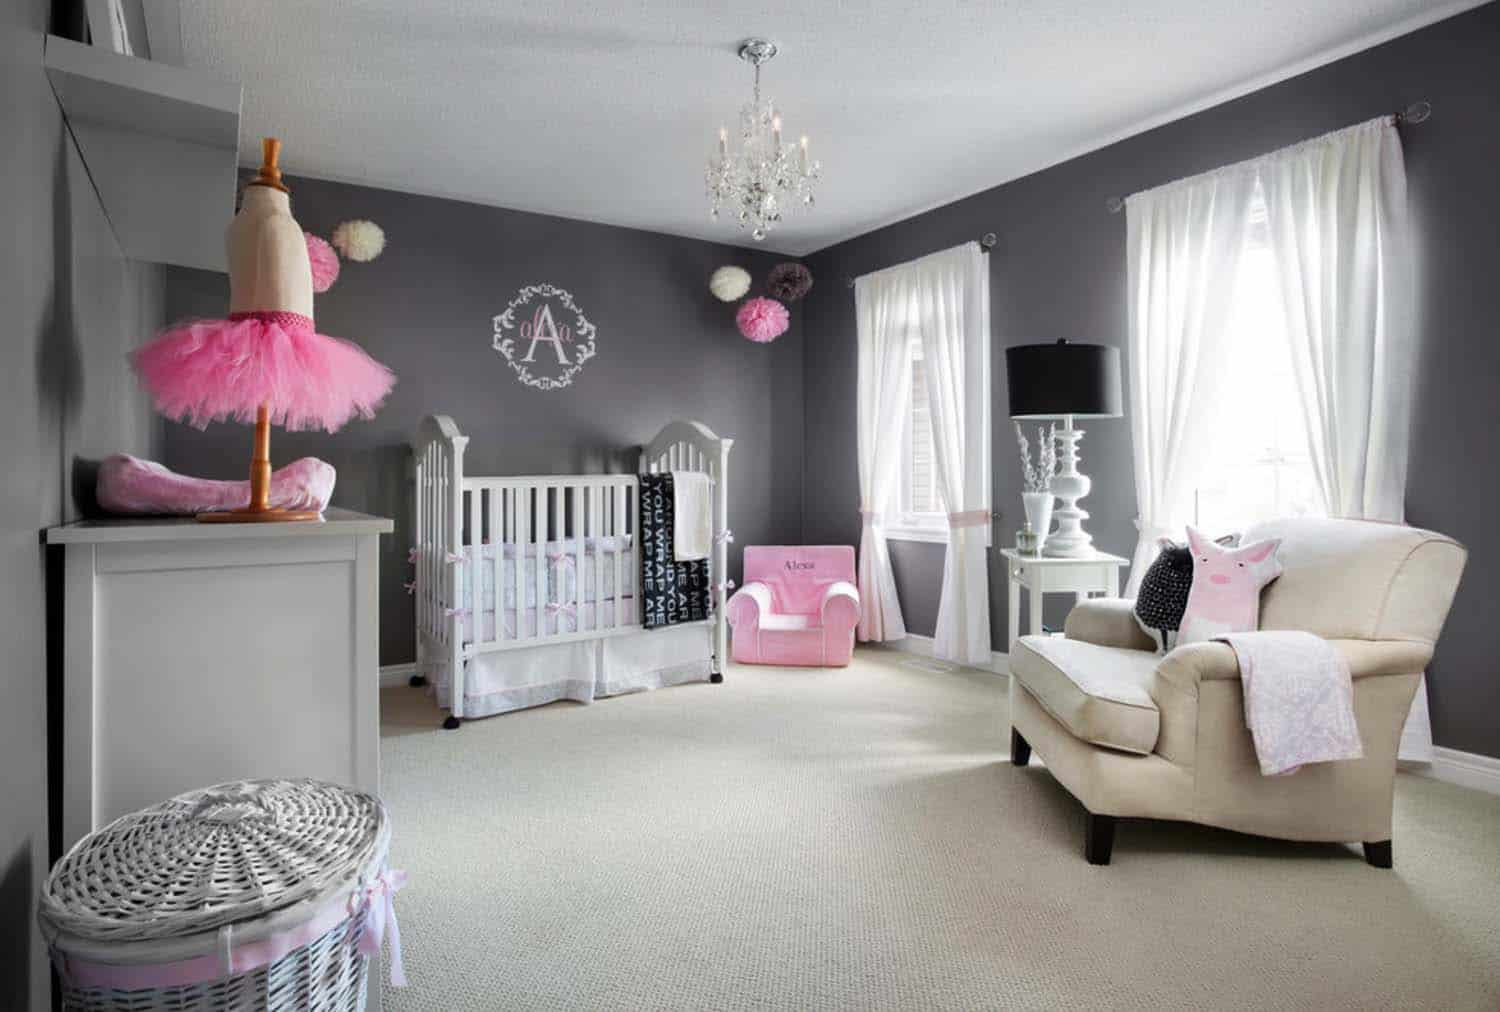 Stylish Nursery Decorating Ideas-26-1 Kindesign